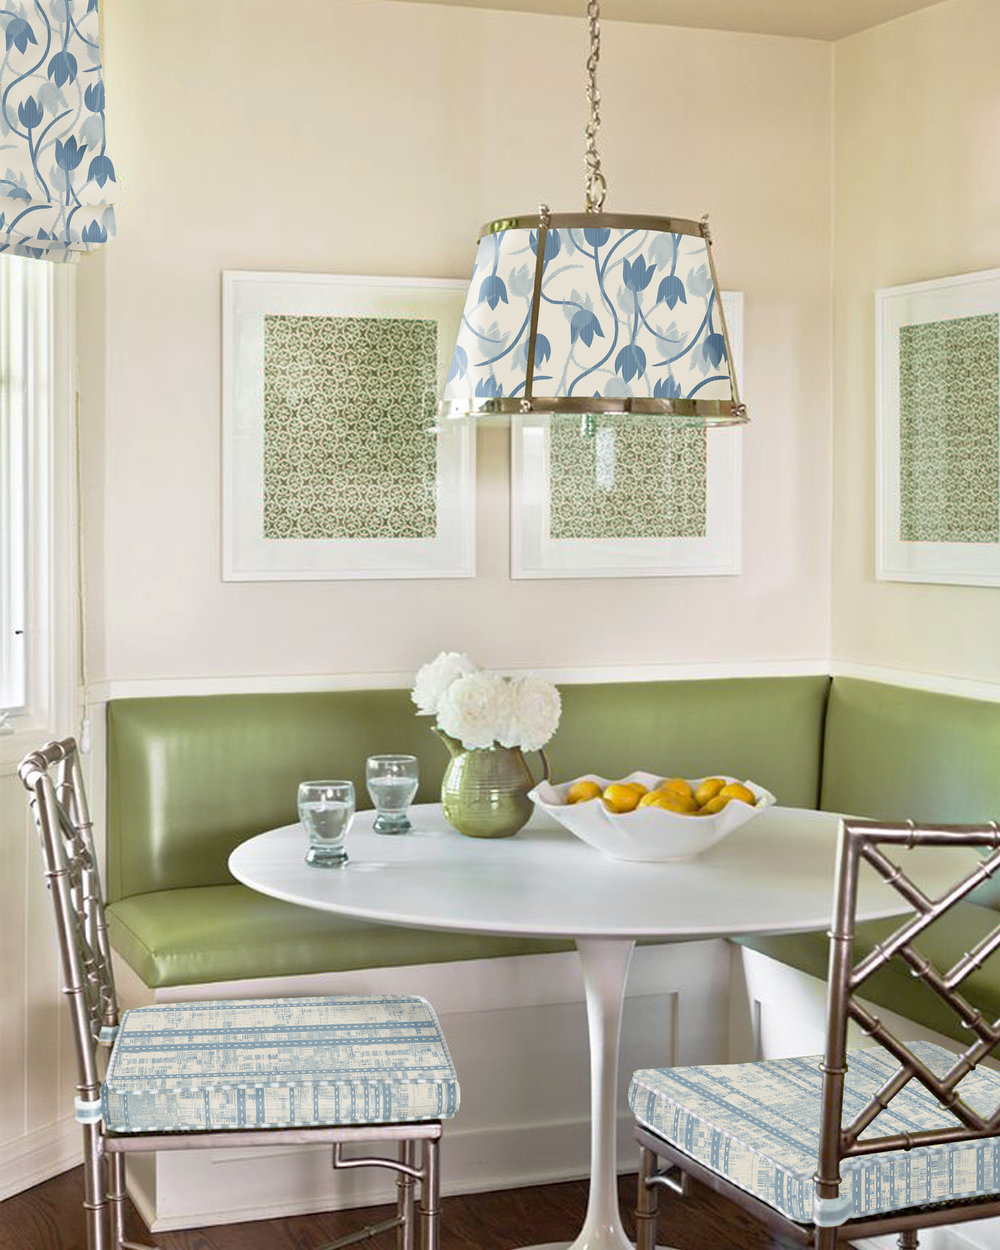 Tulip and Madras Kitchen Banquette.jpg